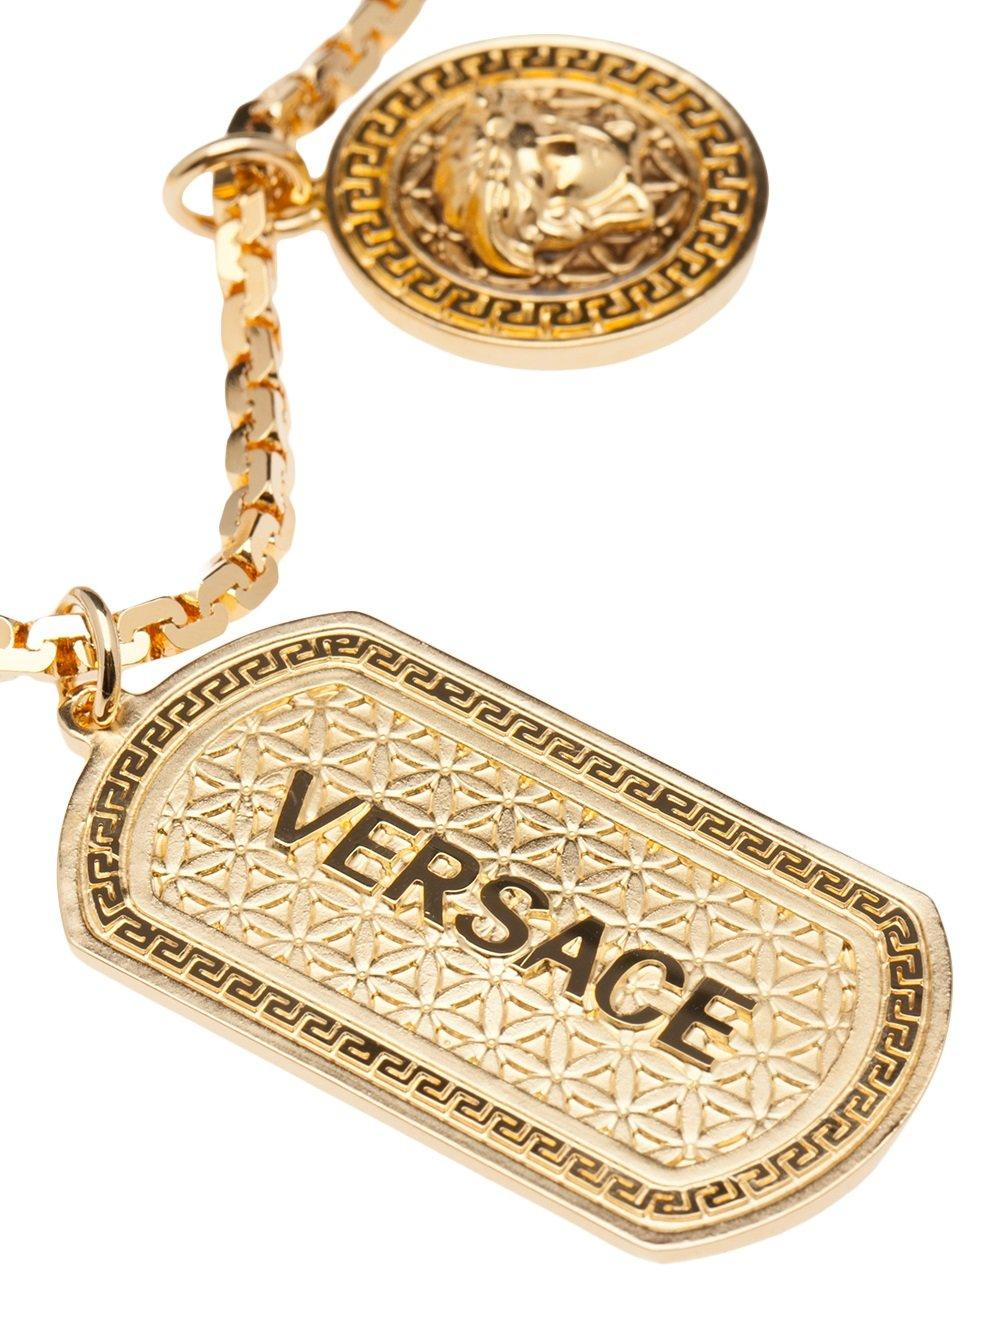 Lyst - Versace Double Dog Tag Necklace in Metallic 830afe1d18d